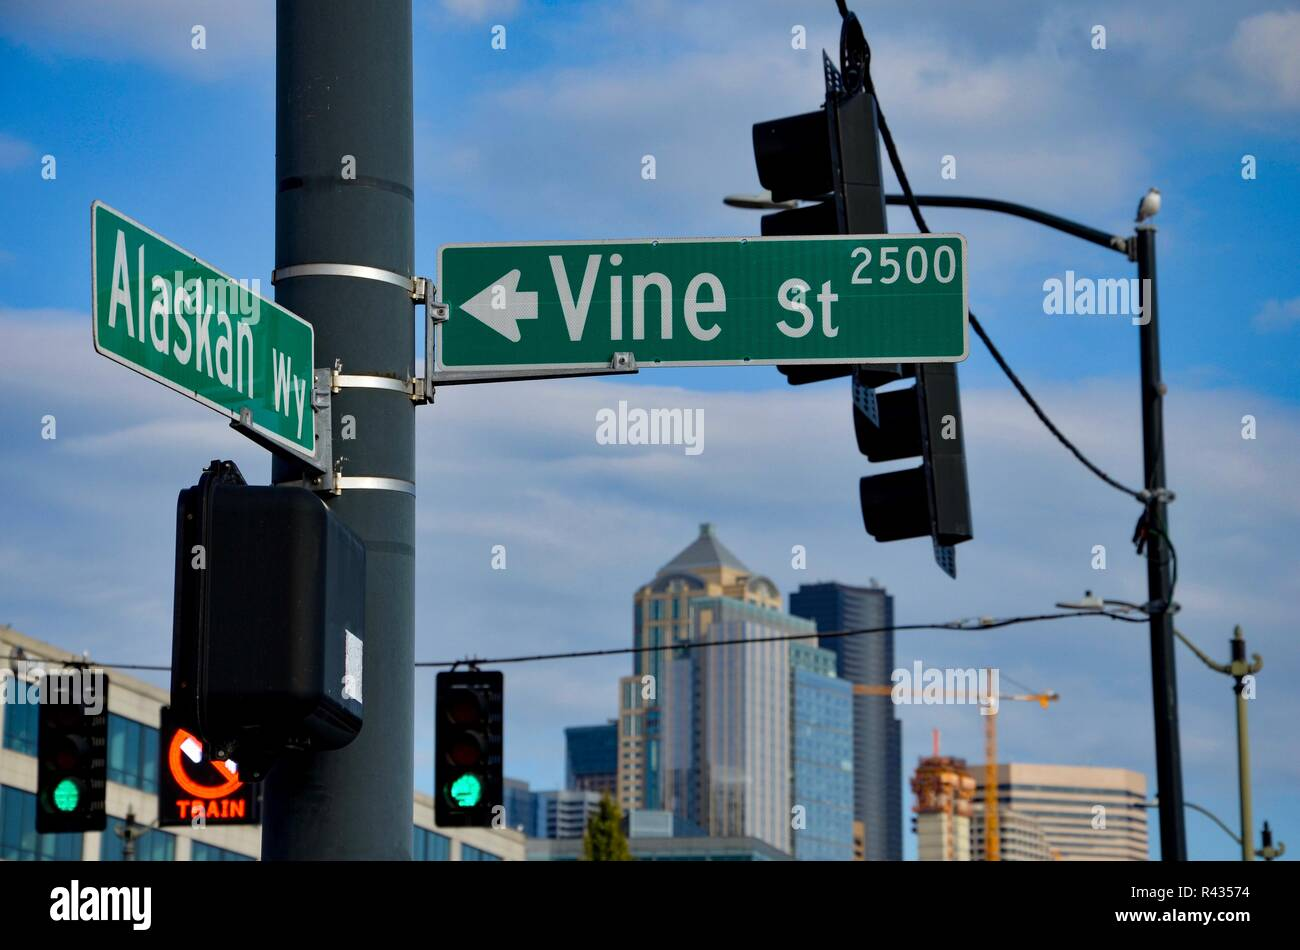 Green street sign in Seattle about Vine Street and Alaskan Way, Washington state, traffic lights, blurred background with buildings - Stock Image